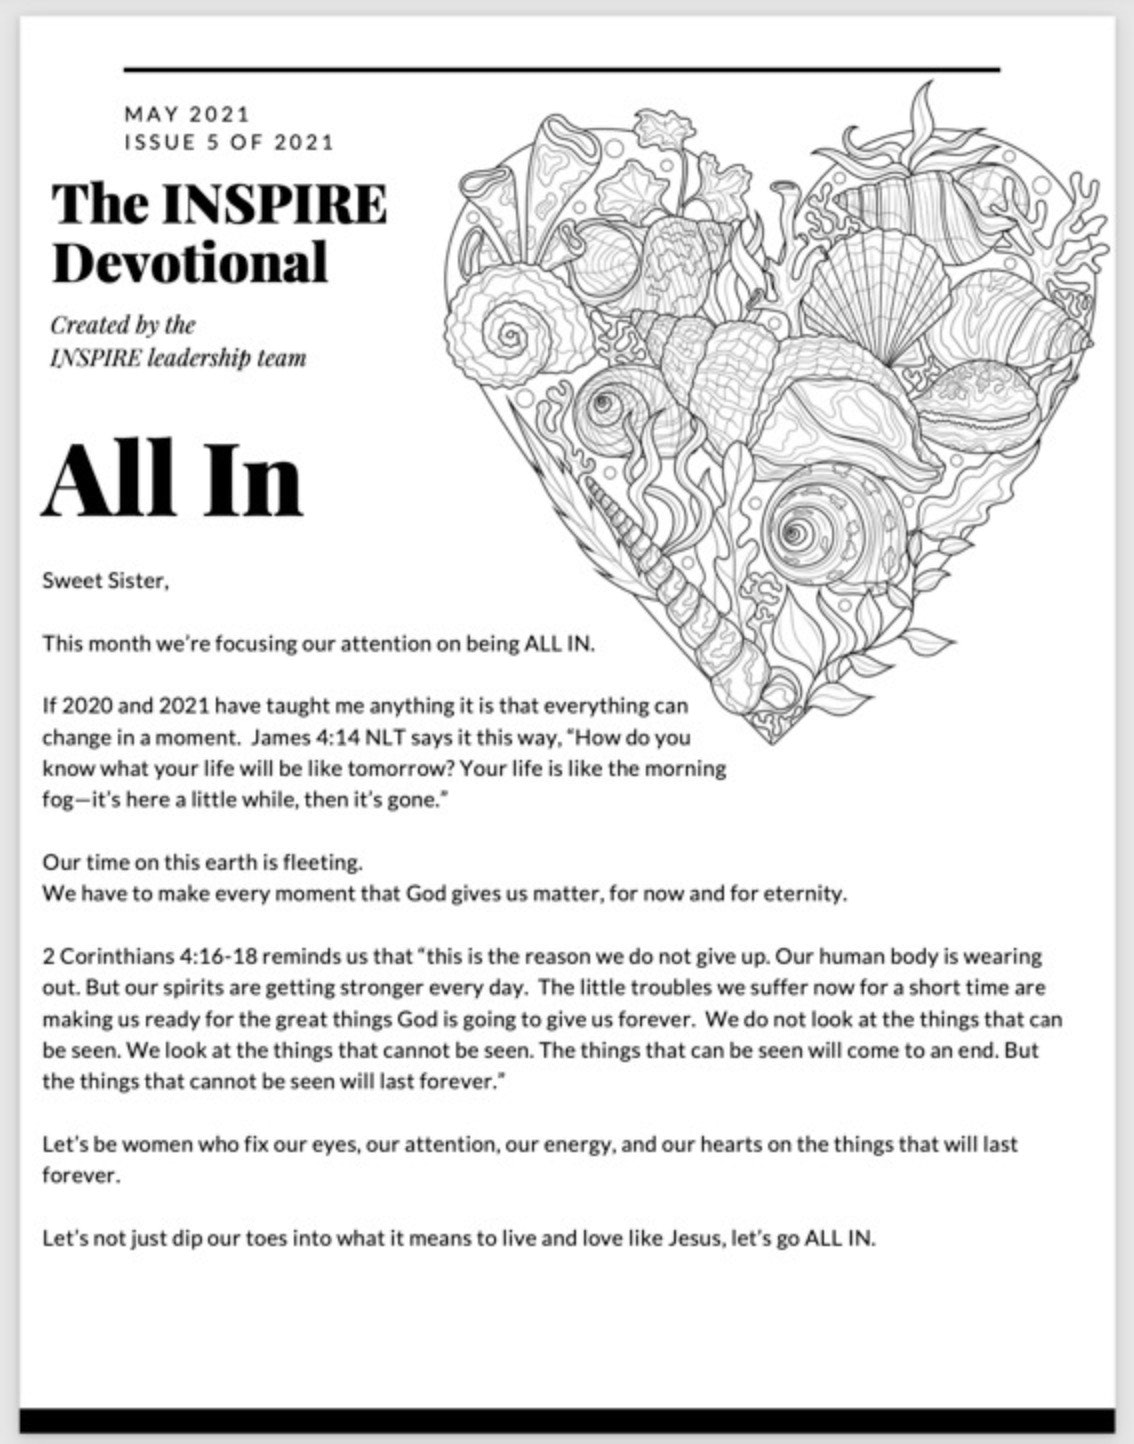 May 2021 The INSPIRE Devotional: All In